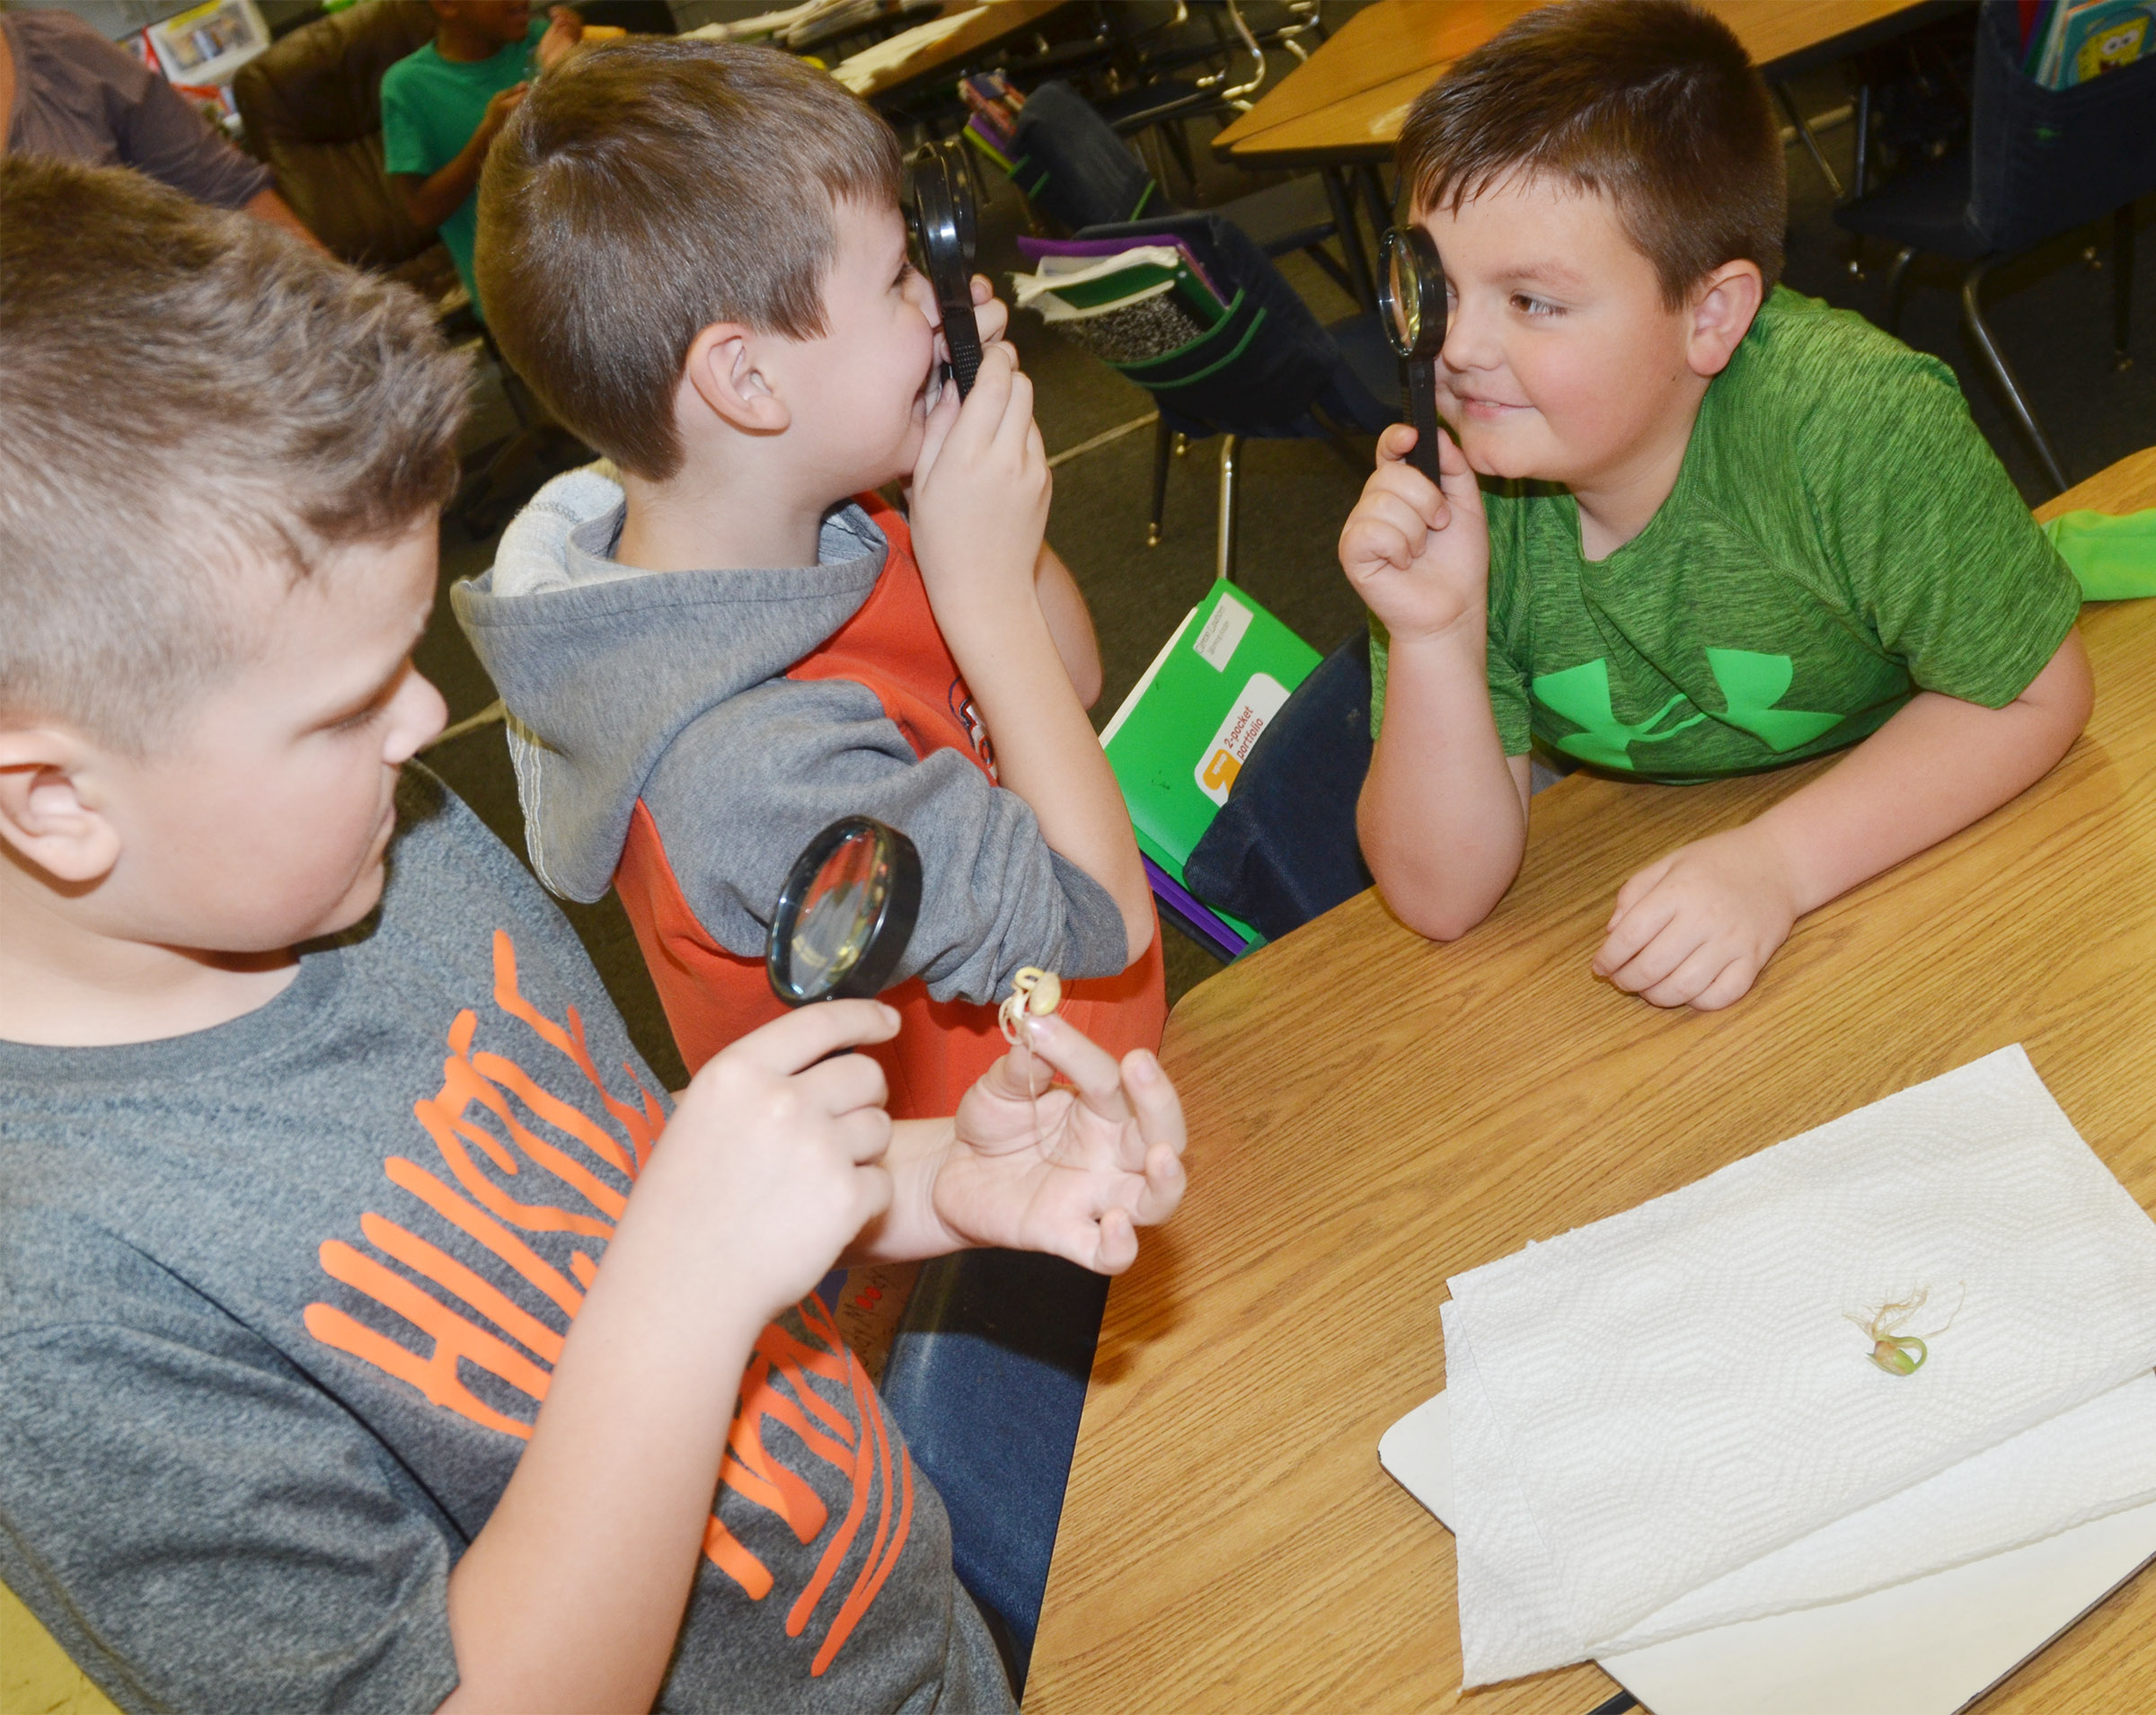 CES second-graders Ryan Tungate, center, and Hayden Maupin look at each other with their magnifying glasses as classmate Cayton Lawhorn gets a look at their bean plant.